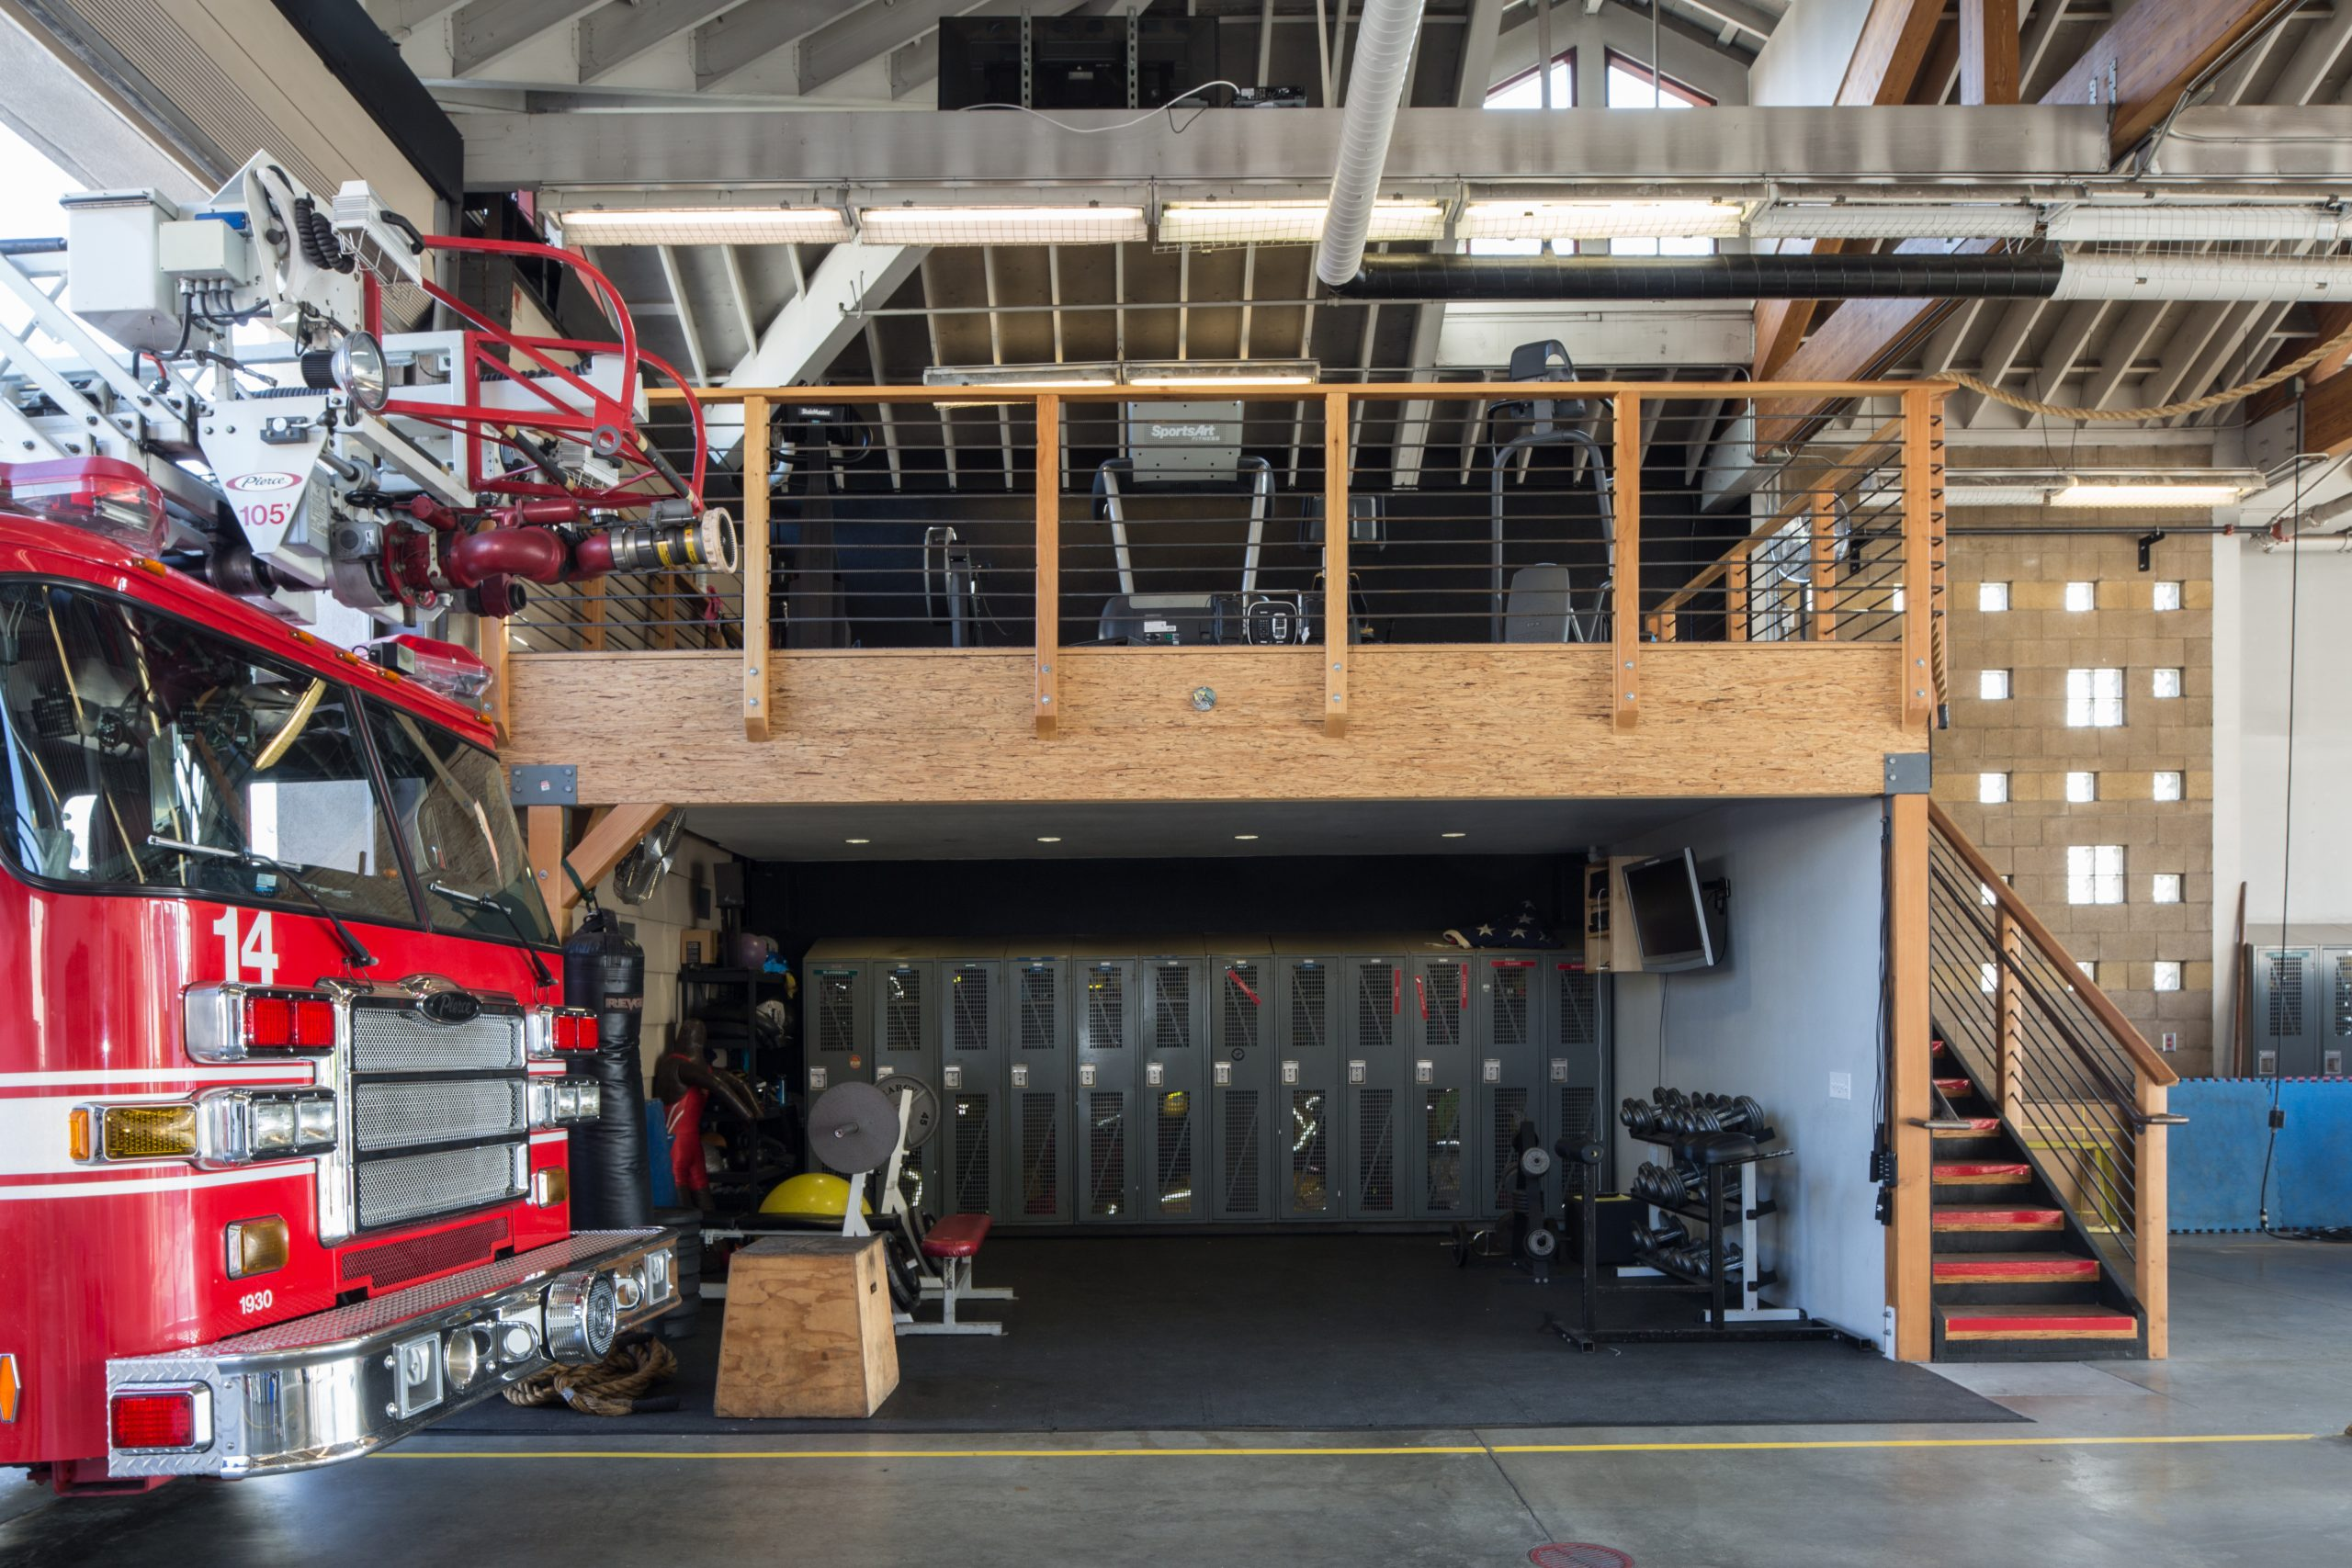 Fire Station 14 – City of San Diego